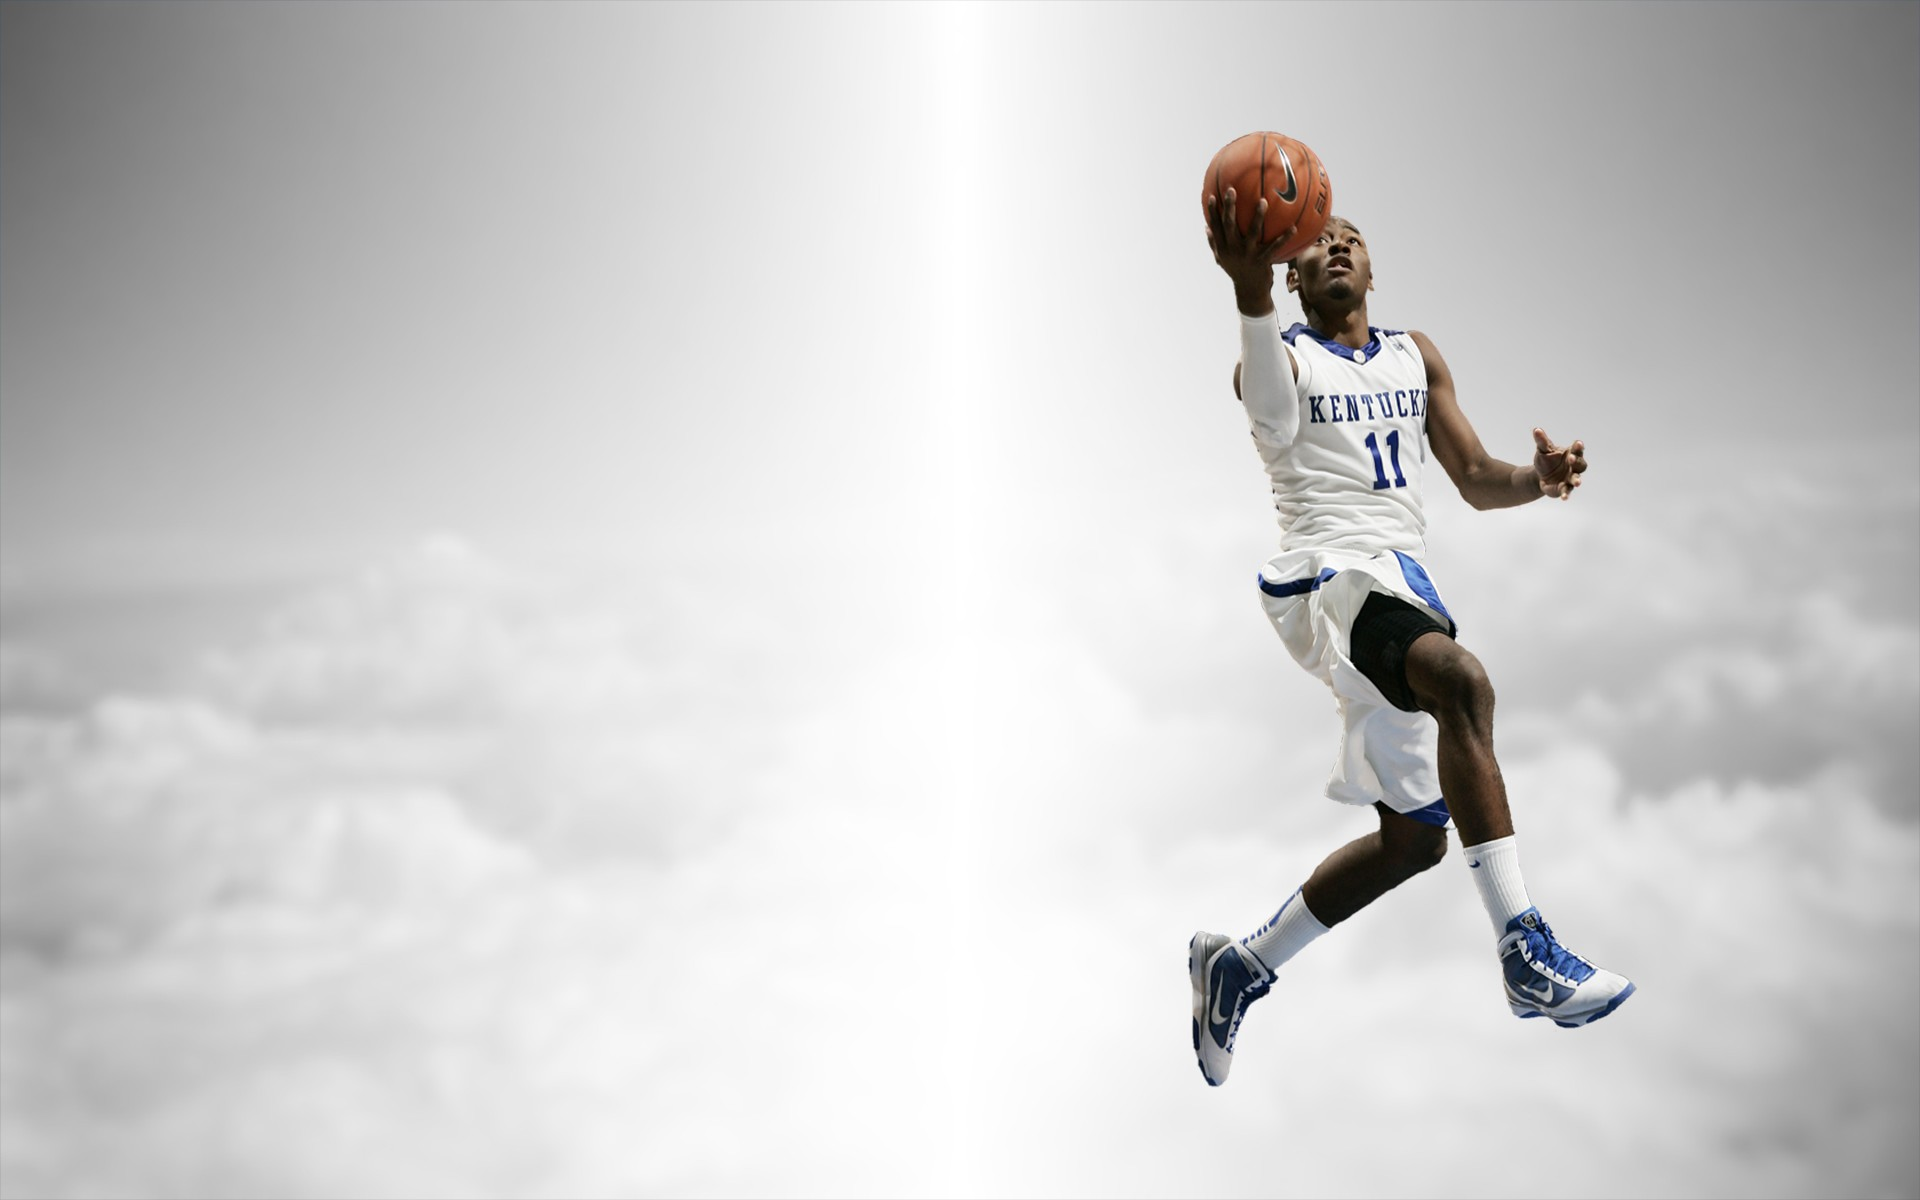 Basketball wallpapers best wallpapers for Best wallpaper for walls